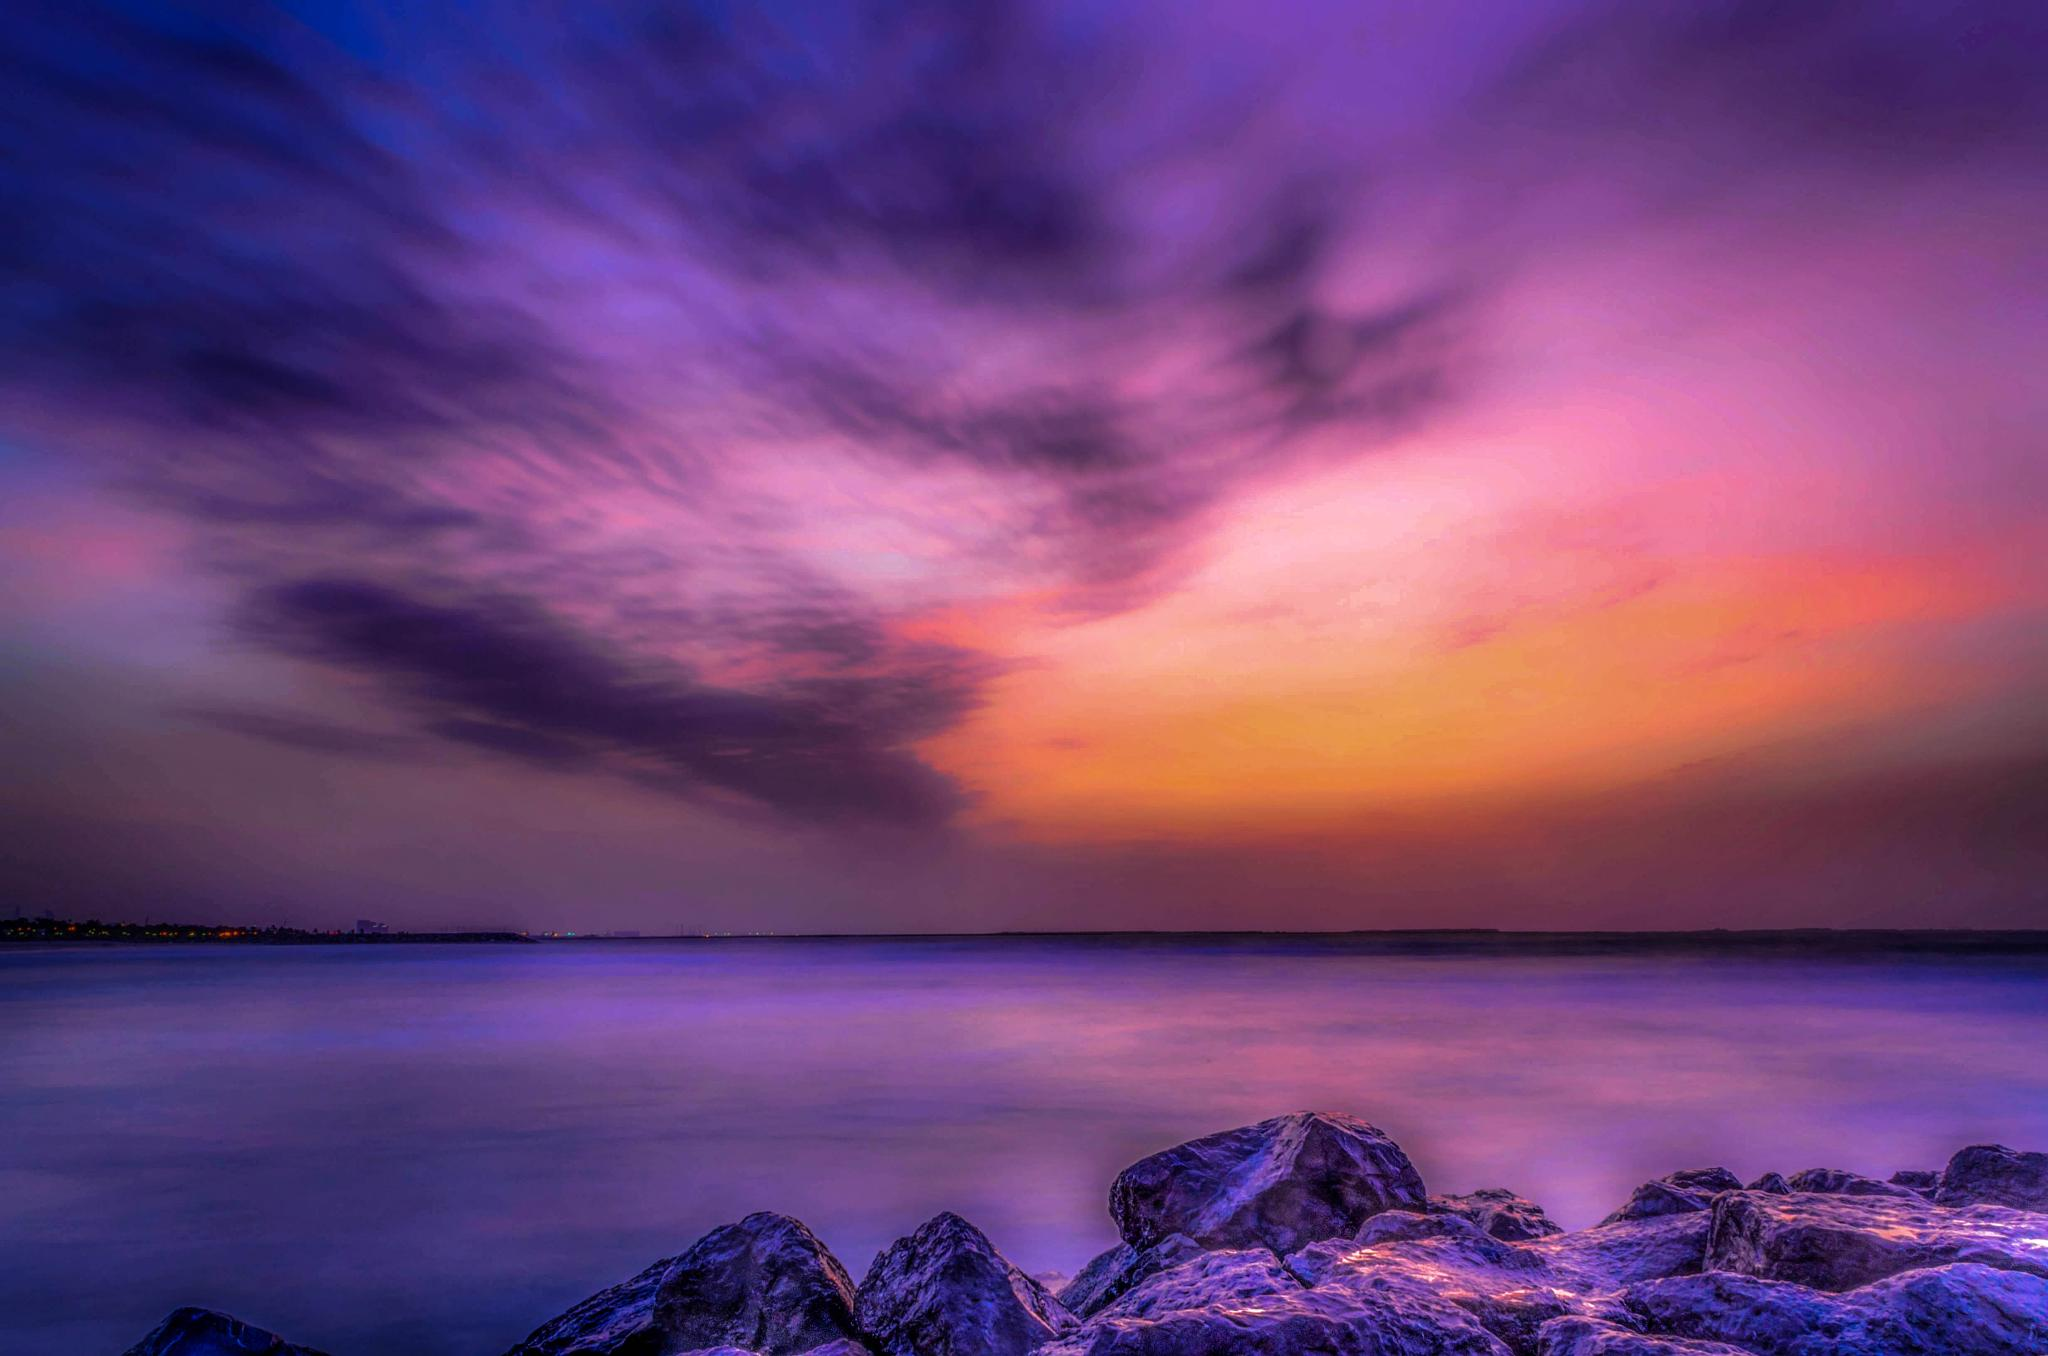 After Sunset by S M Rezaul Haque